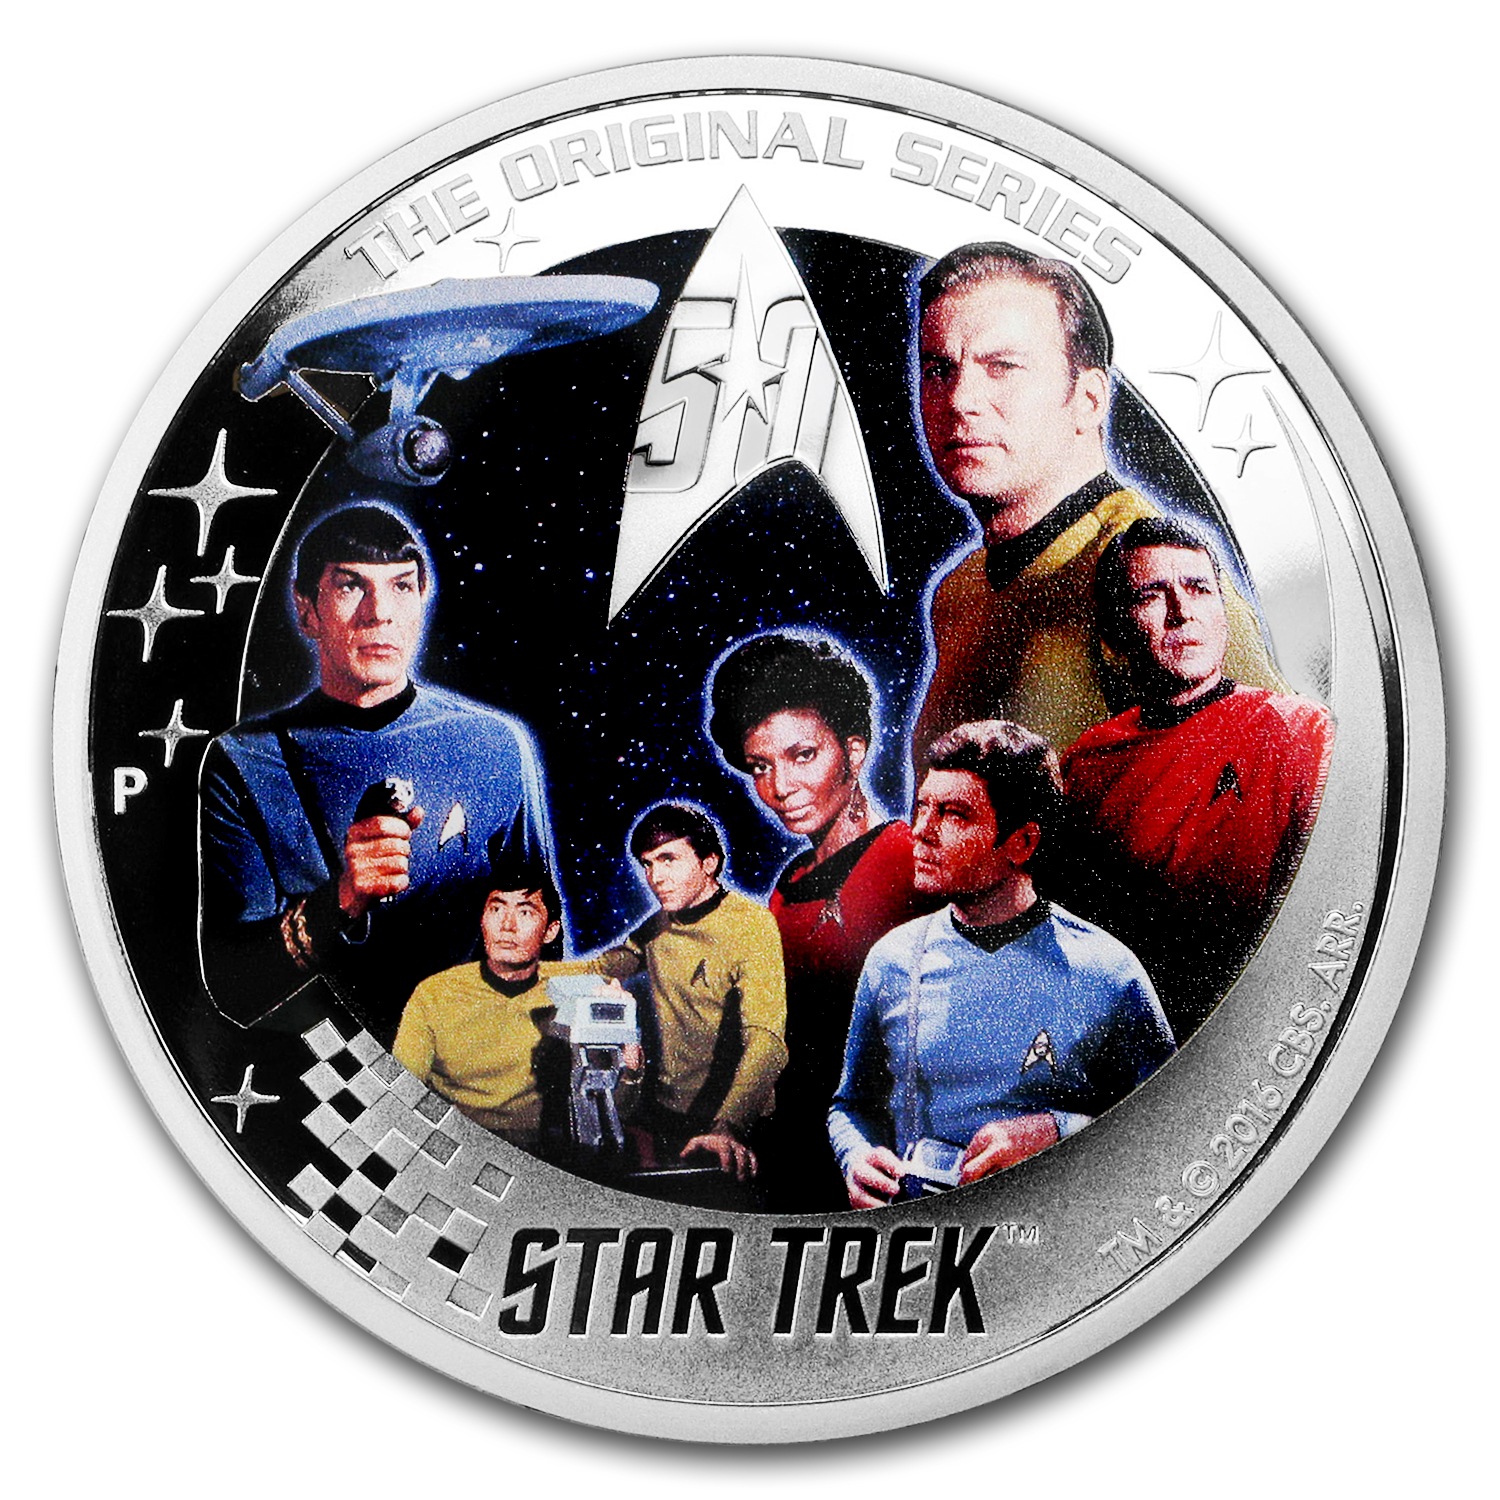 2016 Tuvalu 2 oz Silver Proof Star Trek: Enterprise Crew